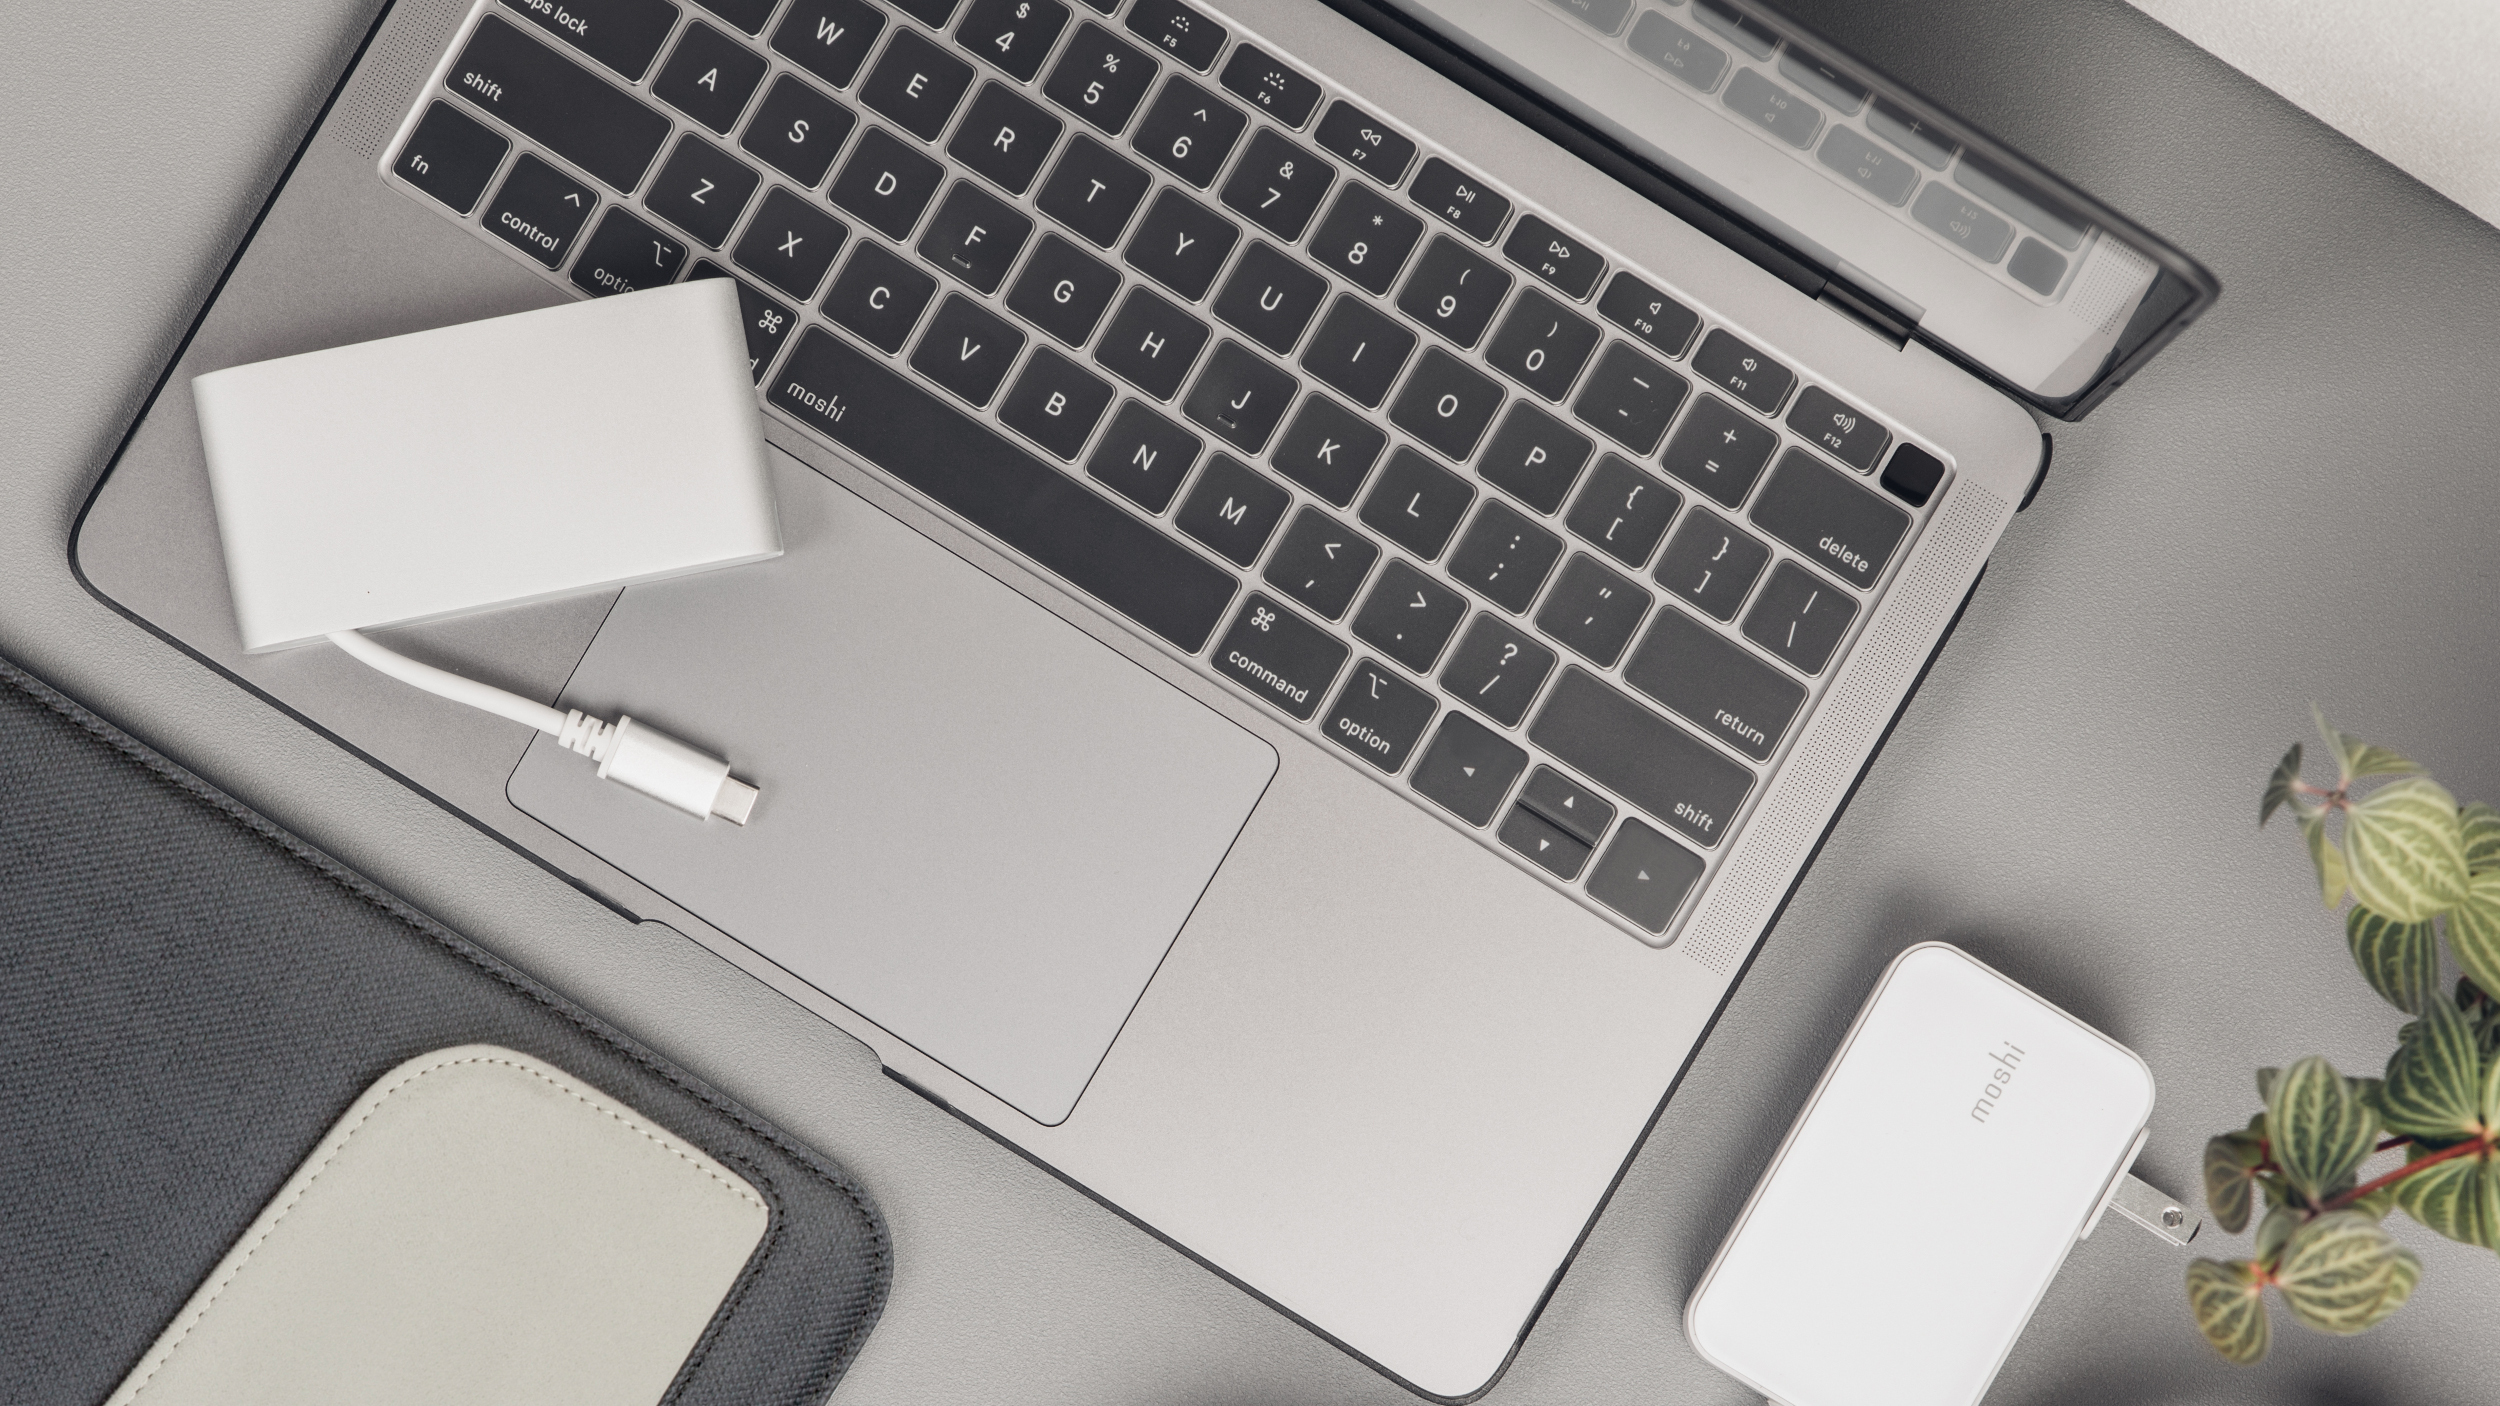 A top-down view of a MacBook computer on a desk